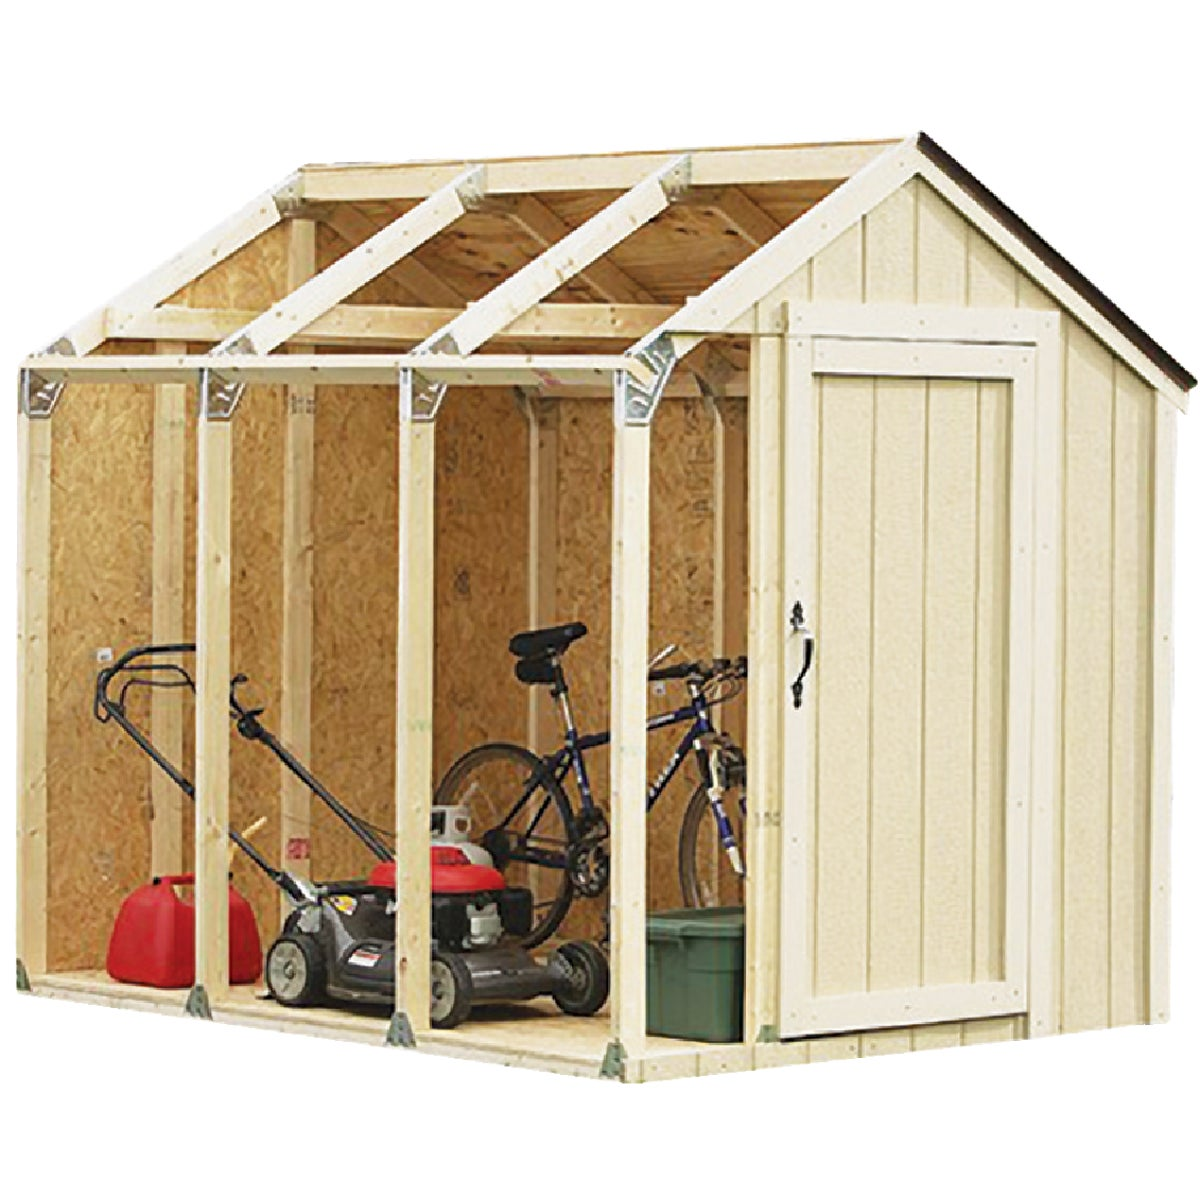 Storage Shed Building Kit